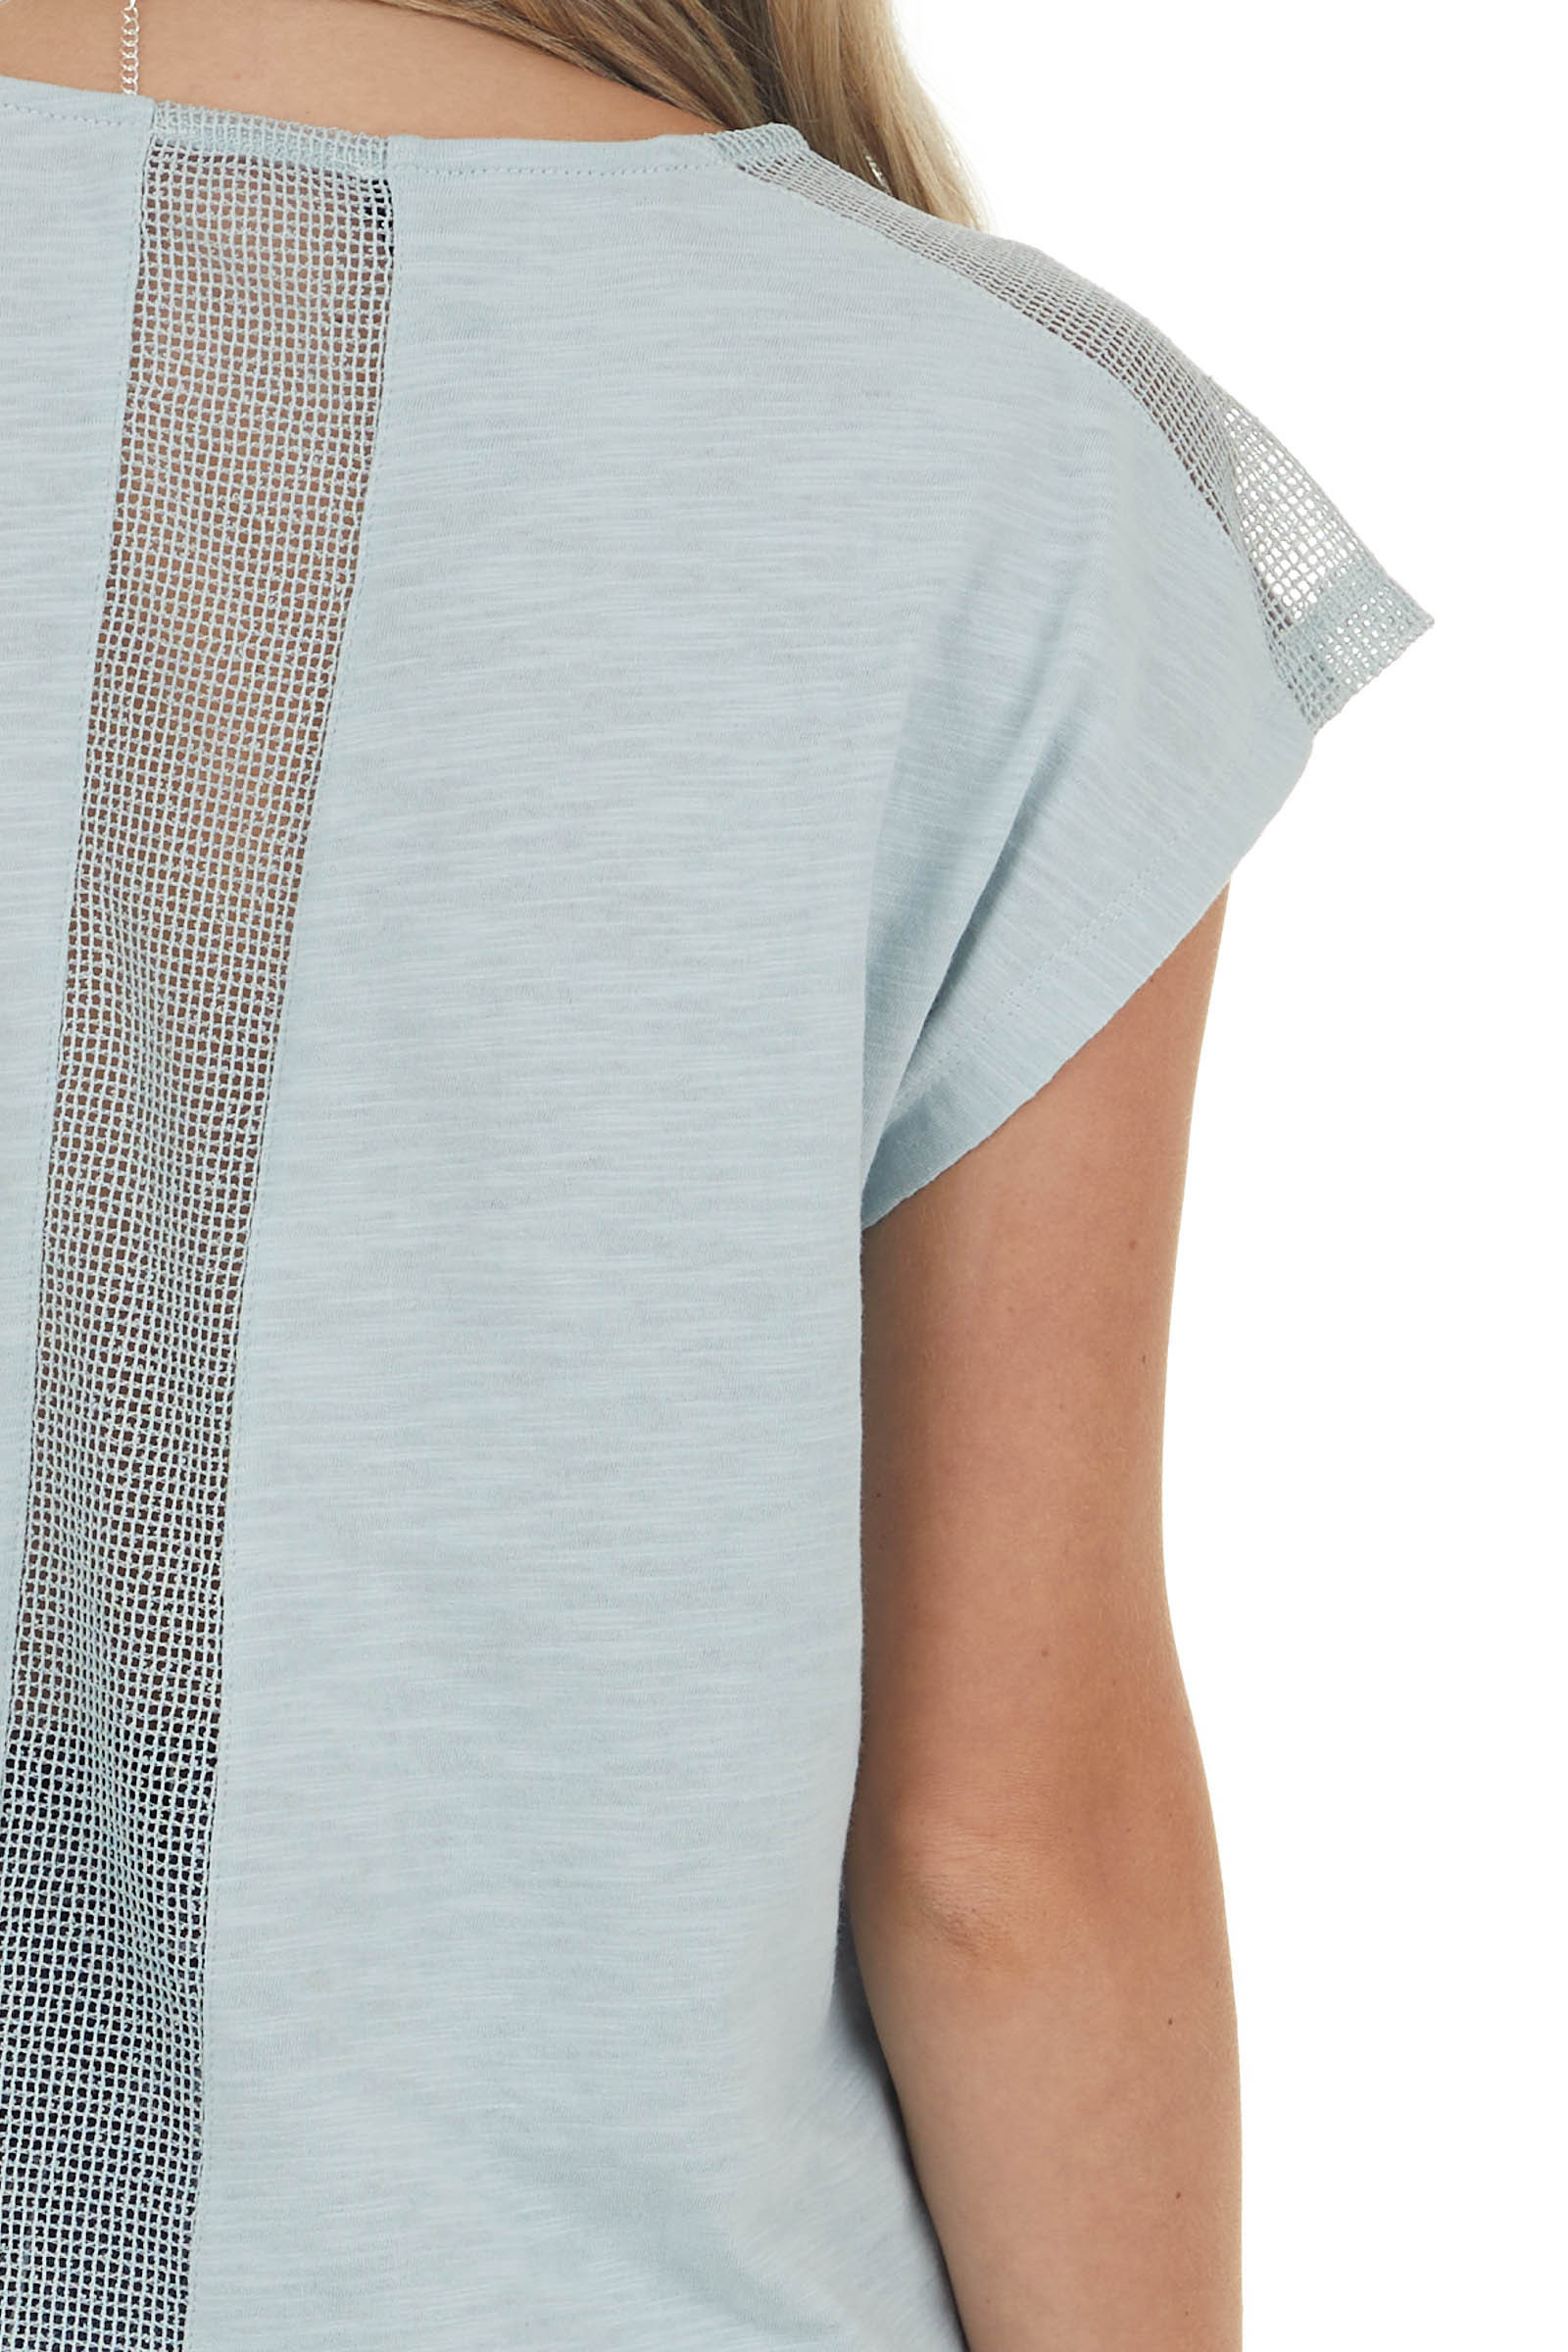 Heathered Mint Short Sleeve Knit Top with Netting Details